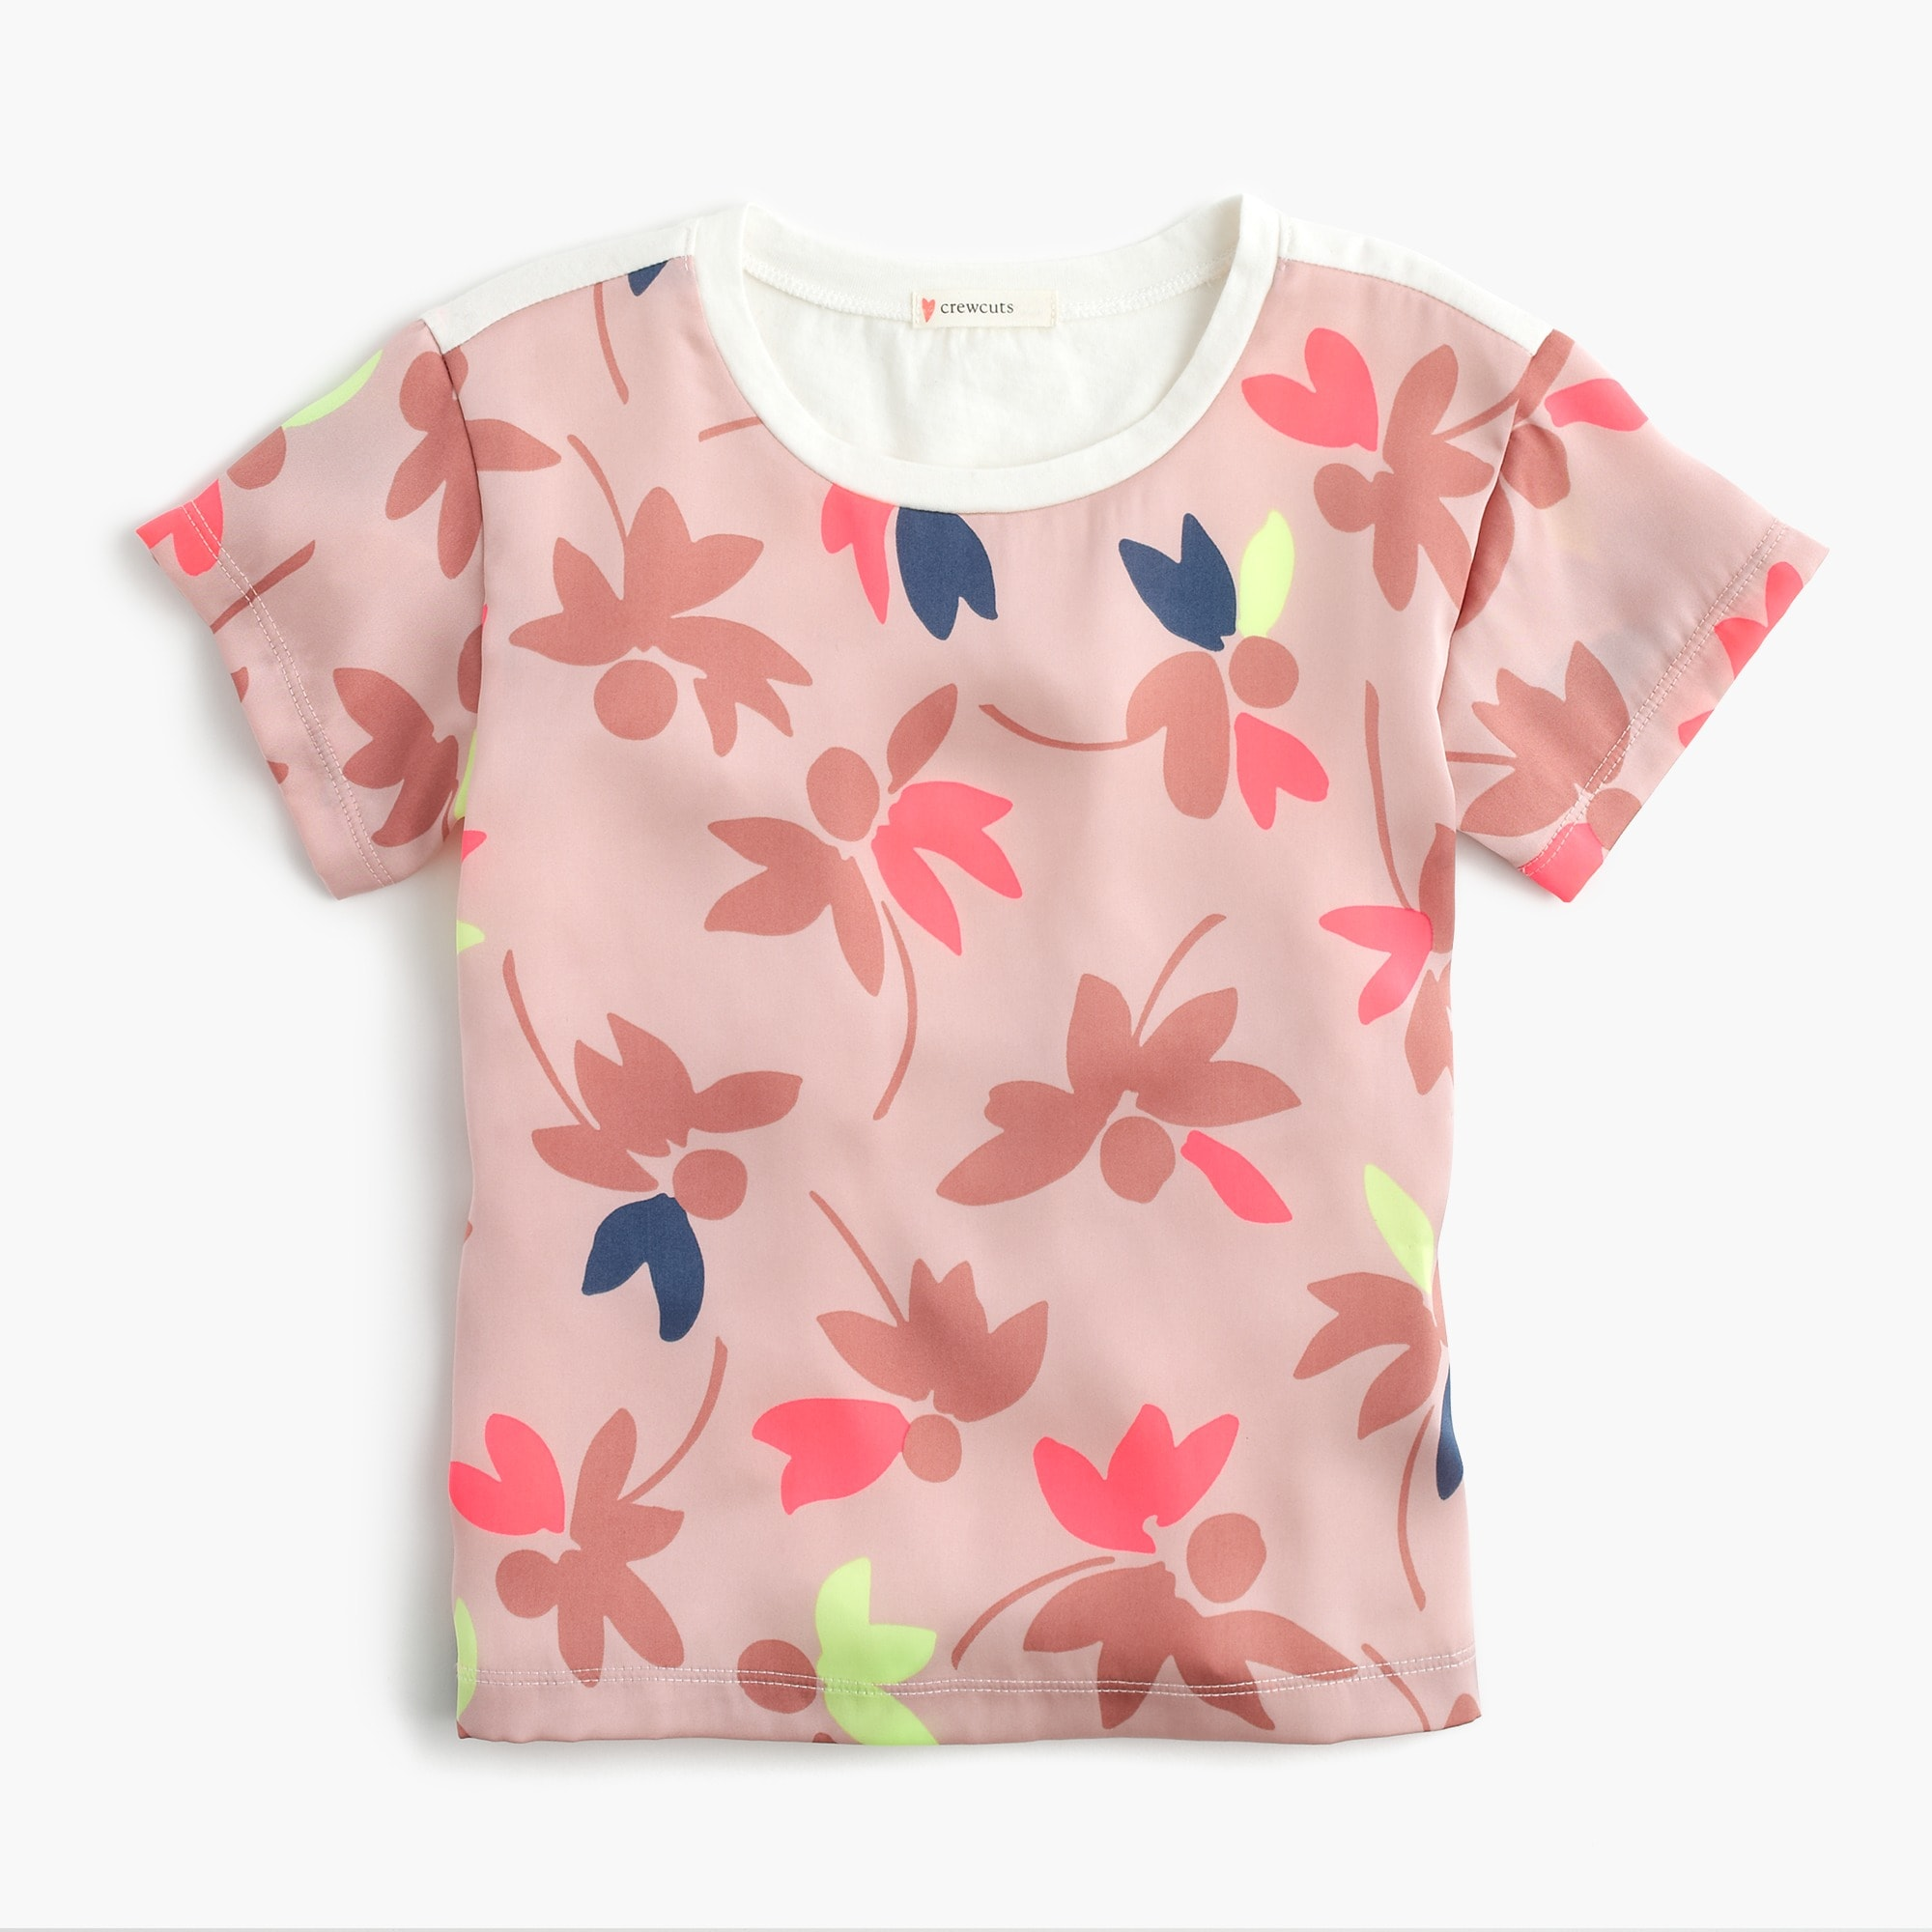 Girls' combo T-shirt in colorful leaf print